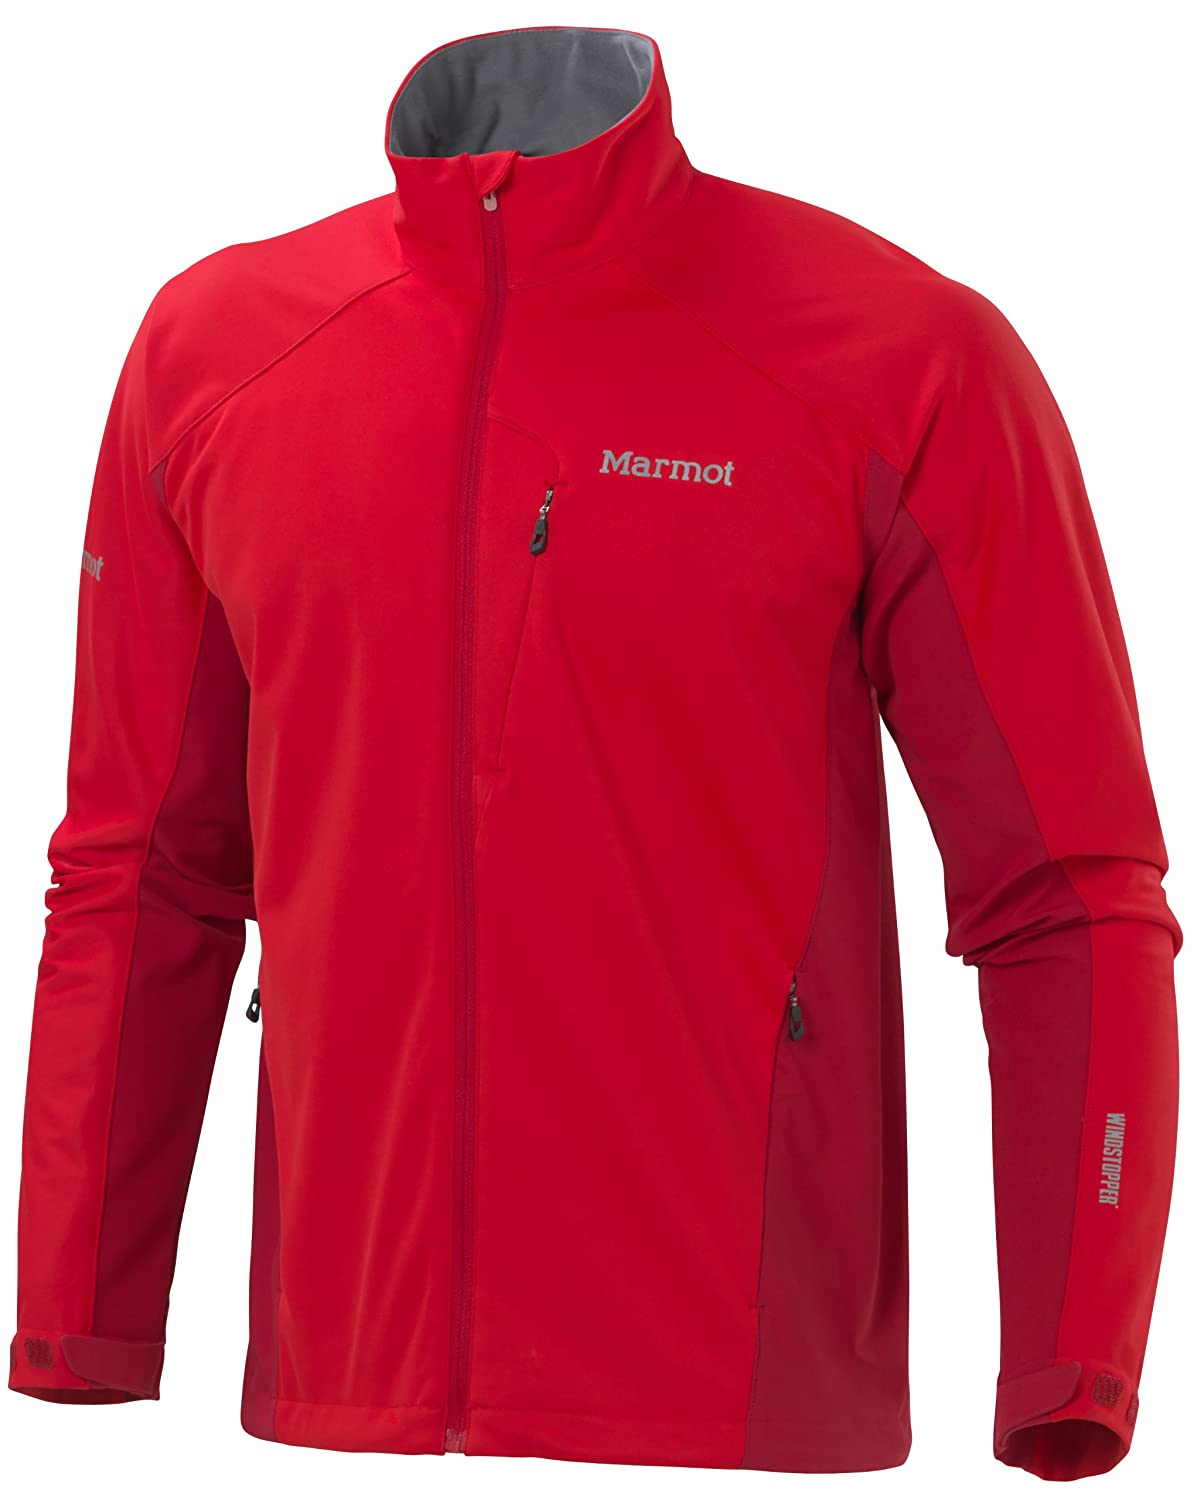 Marmot Herren Windstopper Softshell Jacke Leadville